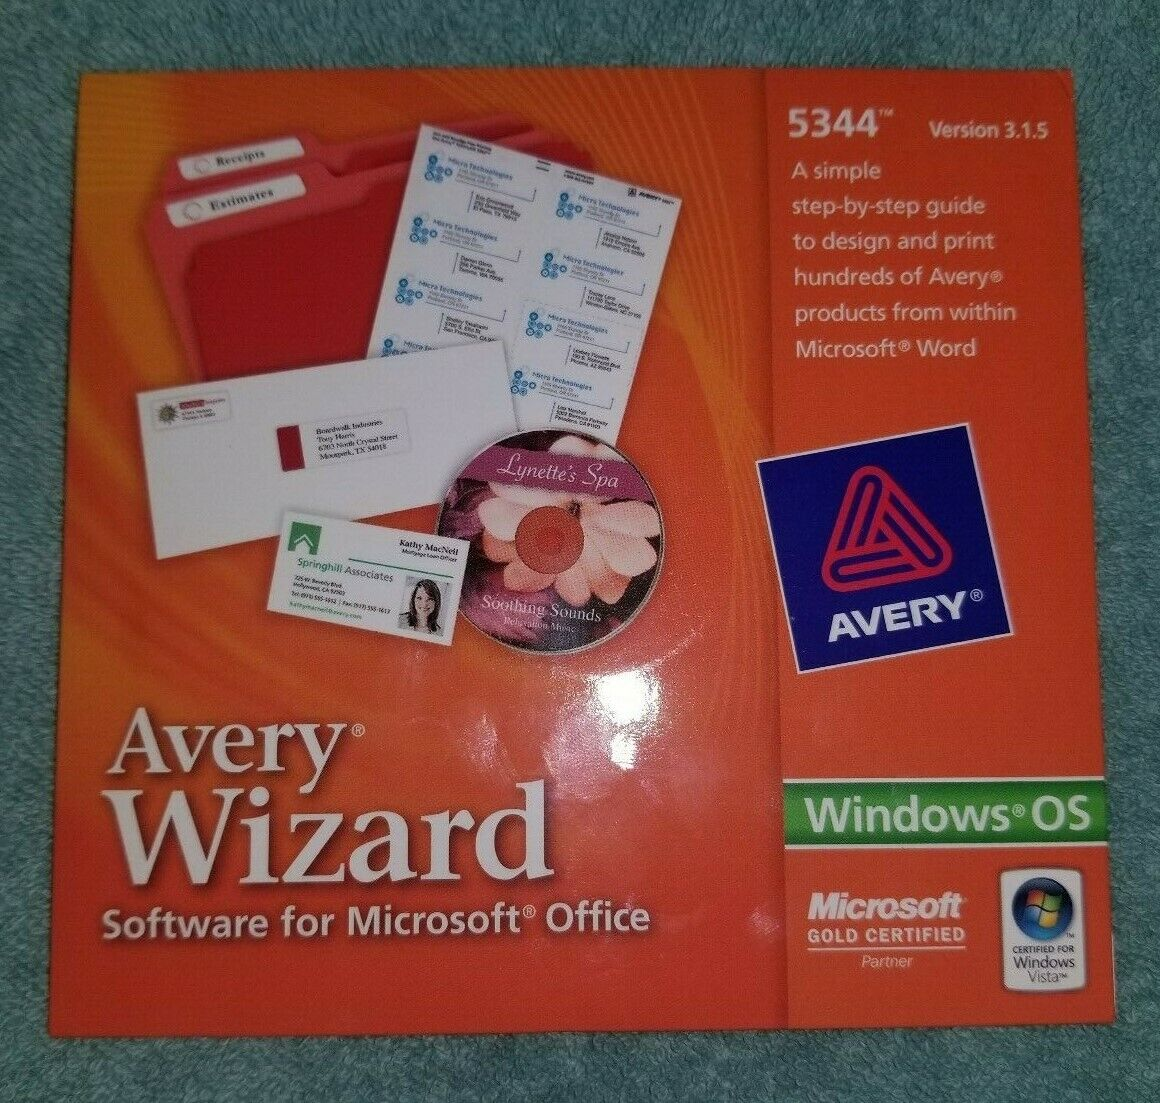 Avery Wizard Software for Microsoft Office- 5344 - Sealed